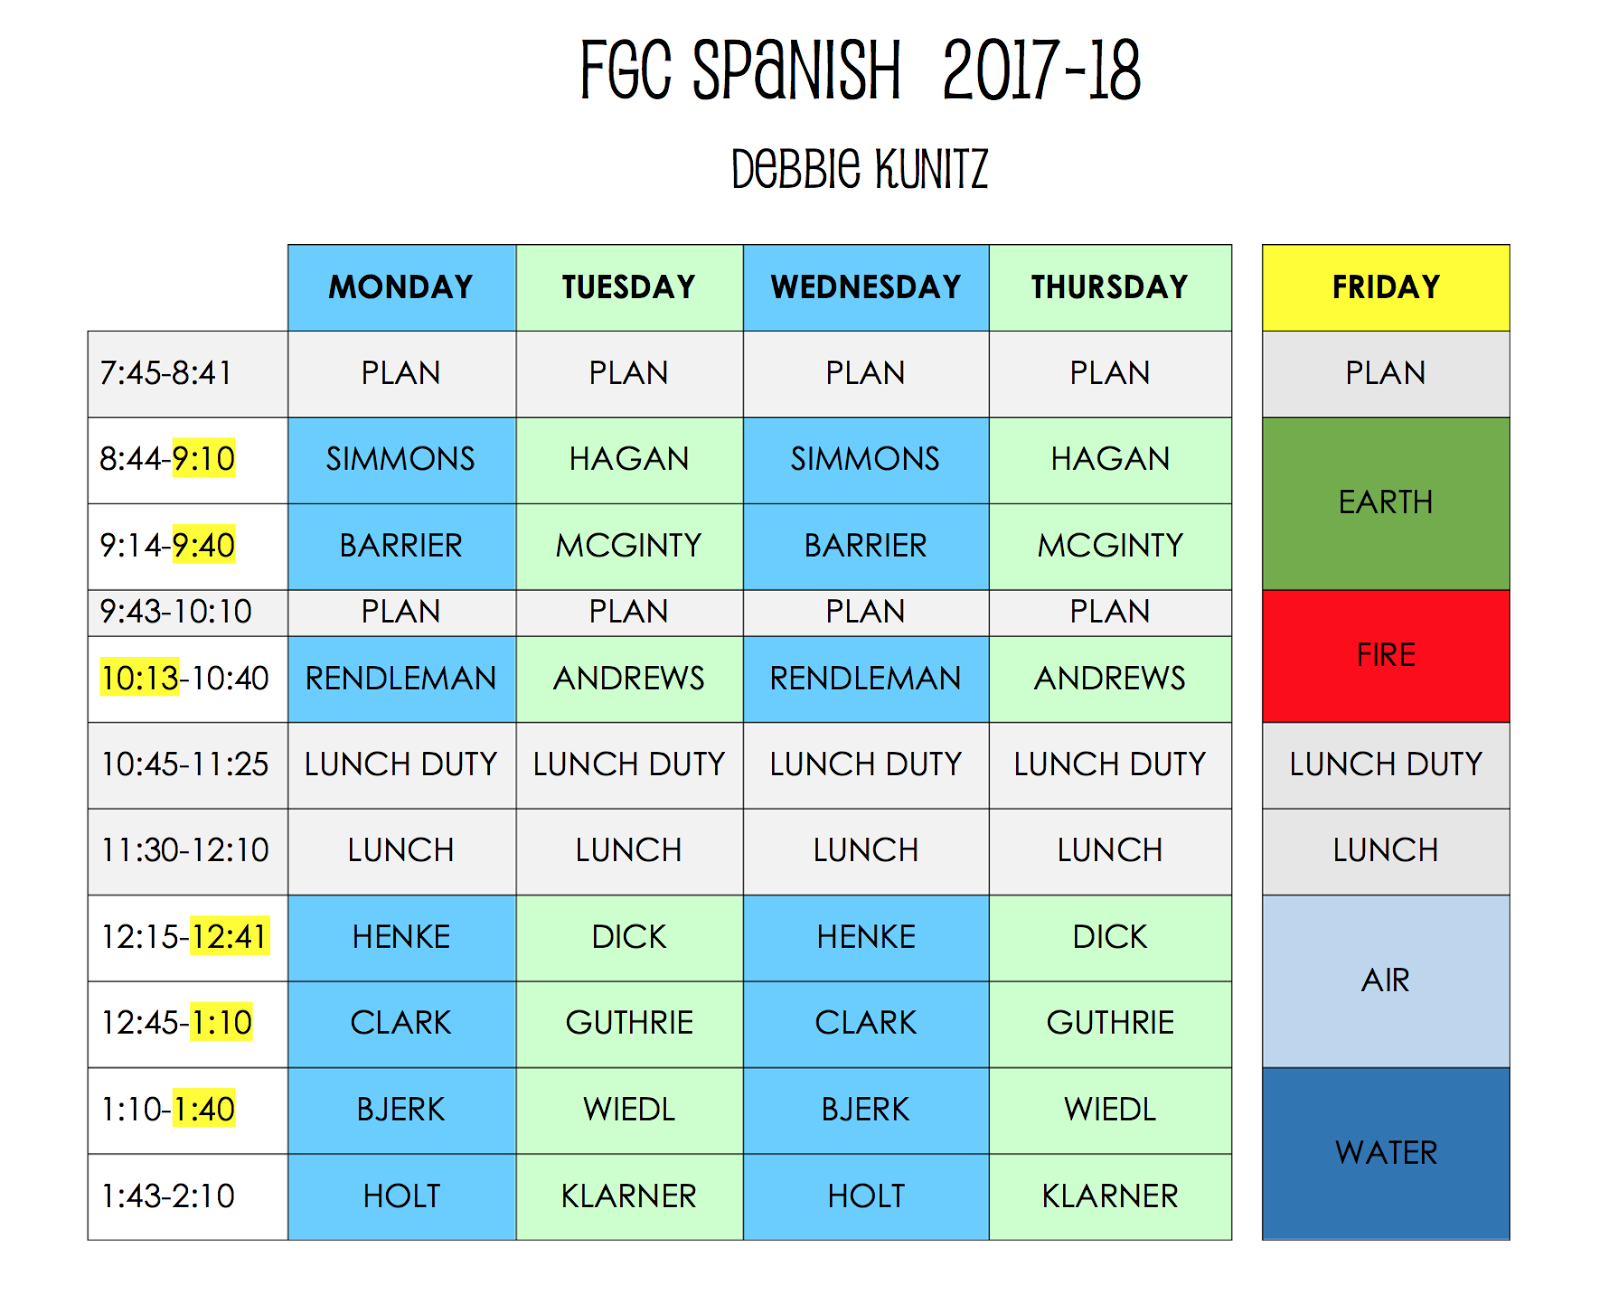 FGC SPANISH: Schedule